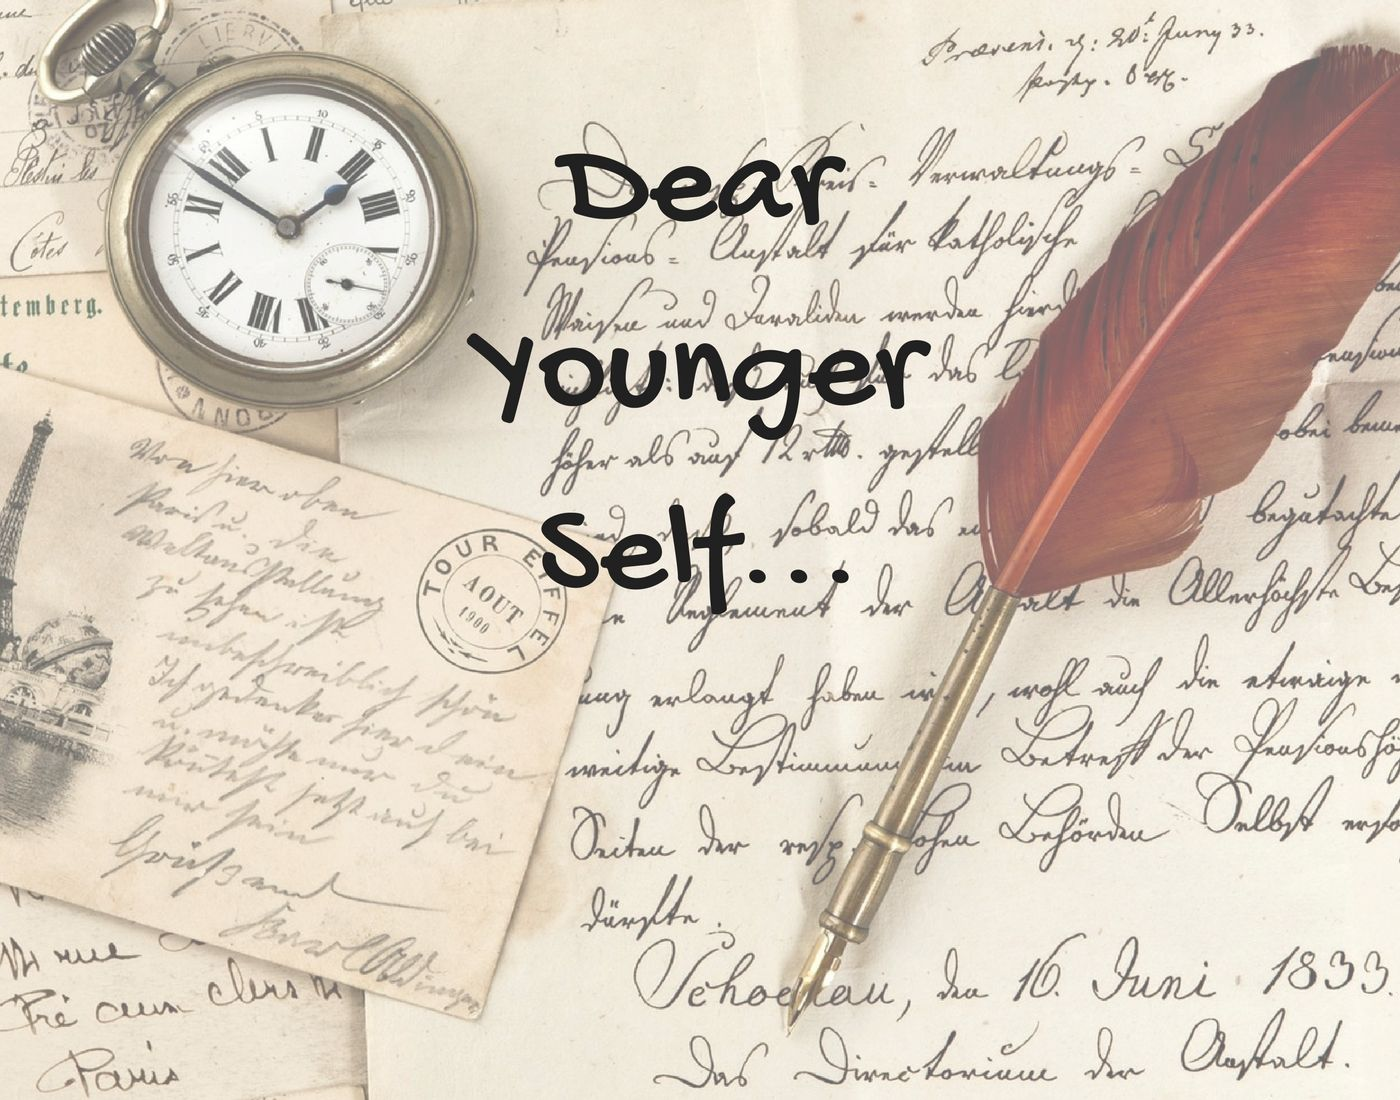 Letters to the younger self